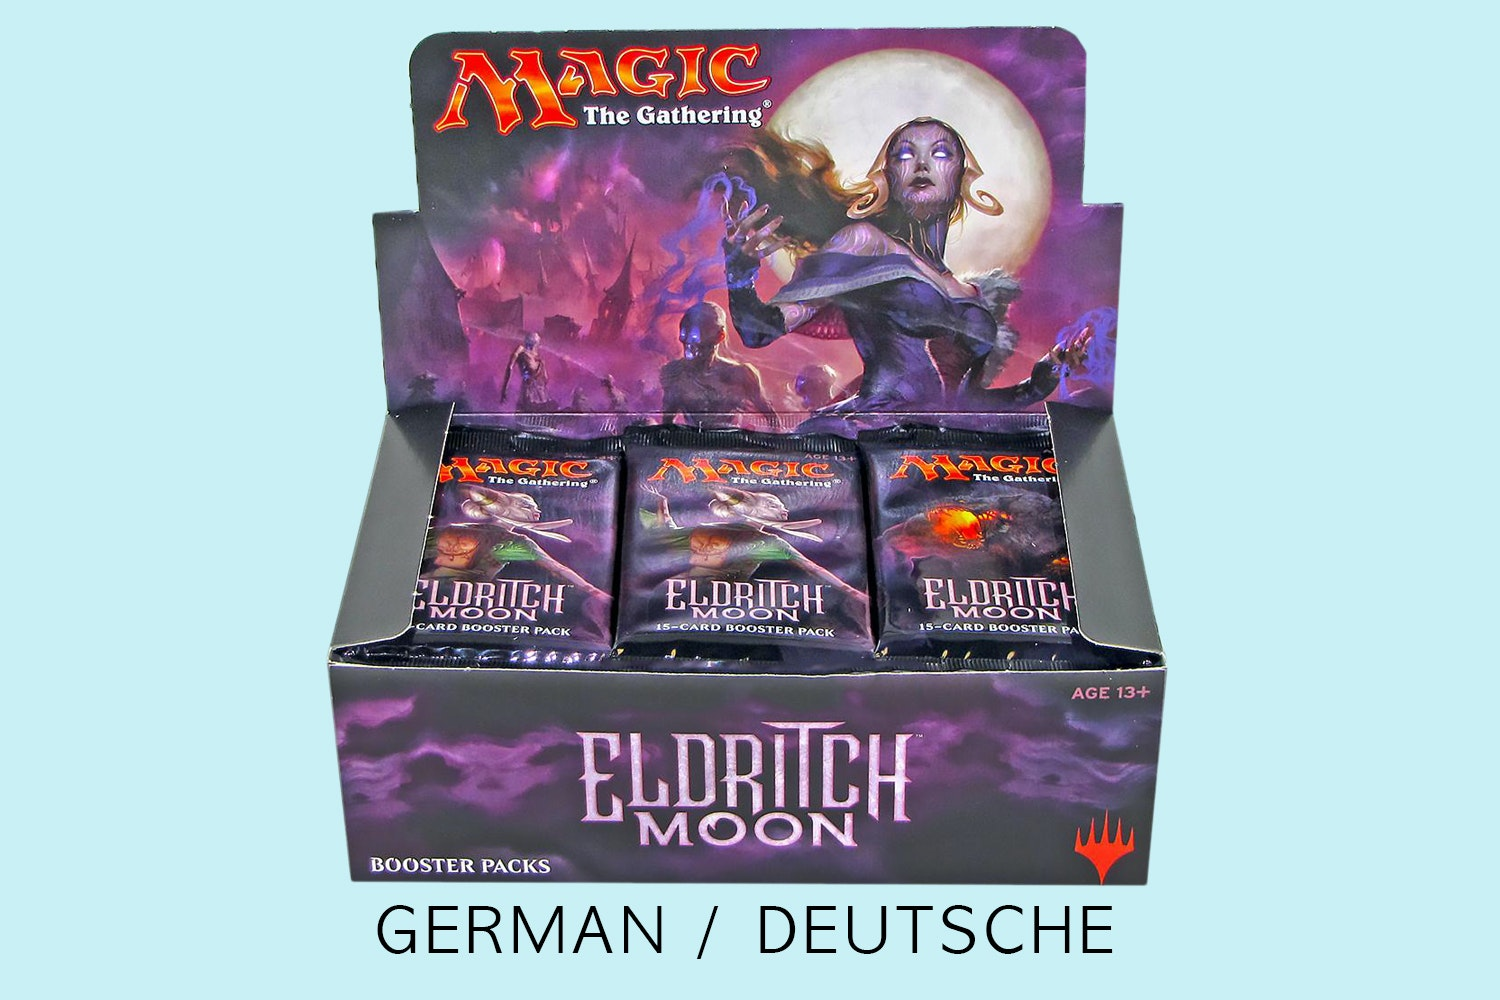 Eldritch Moon: German